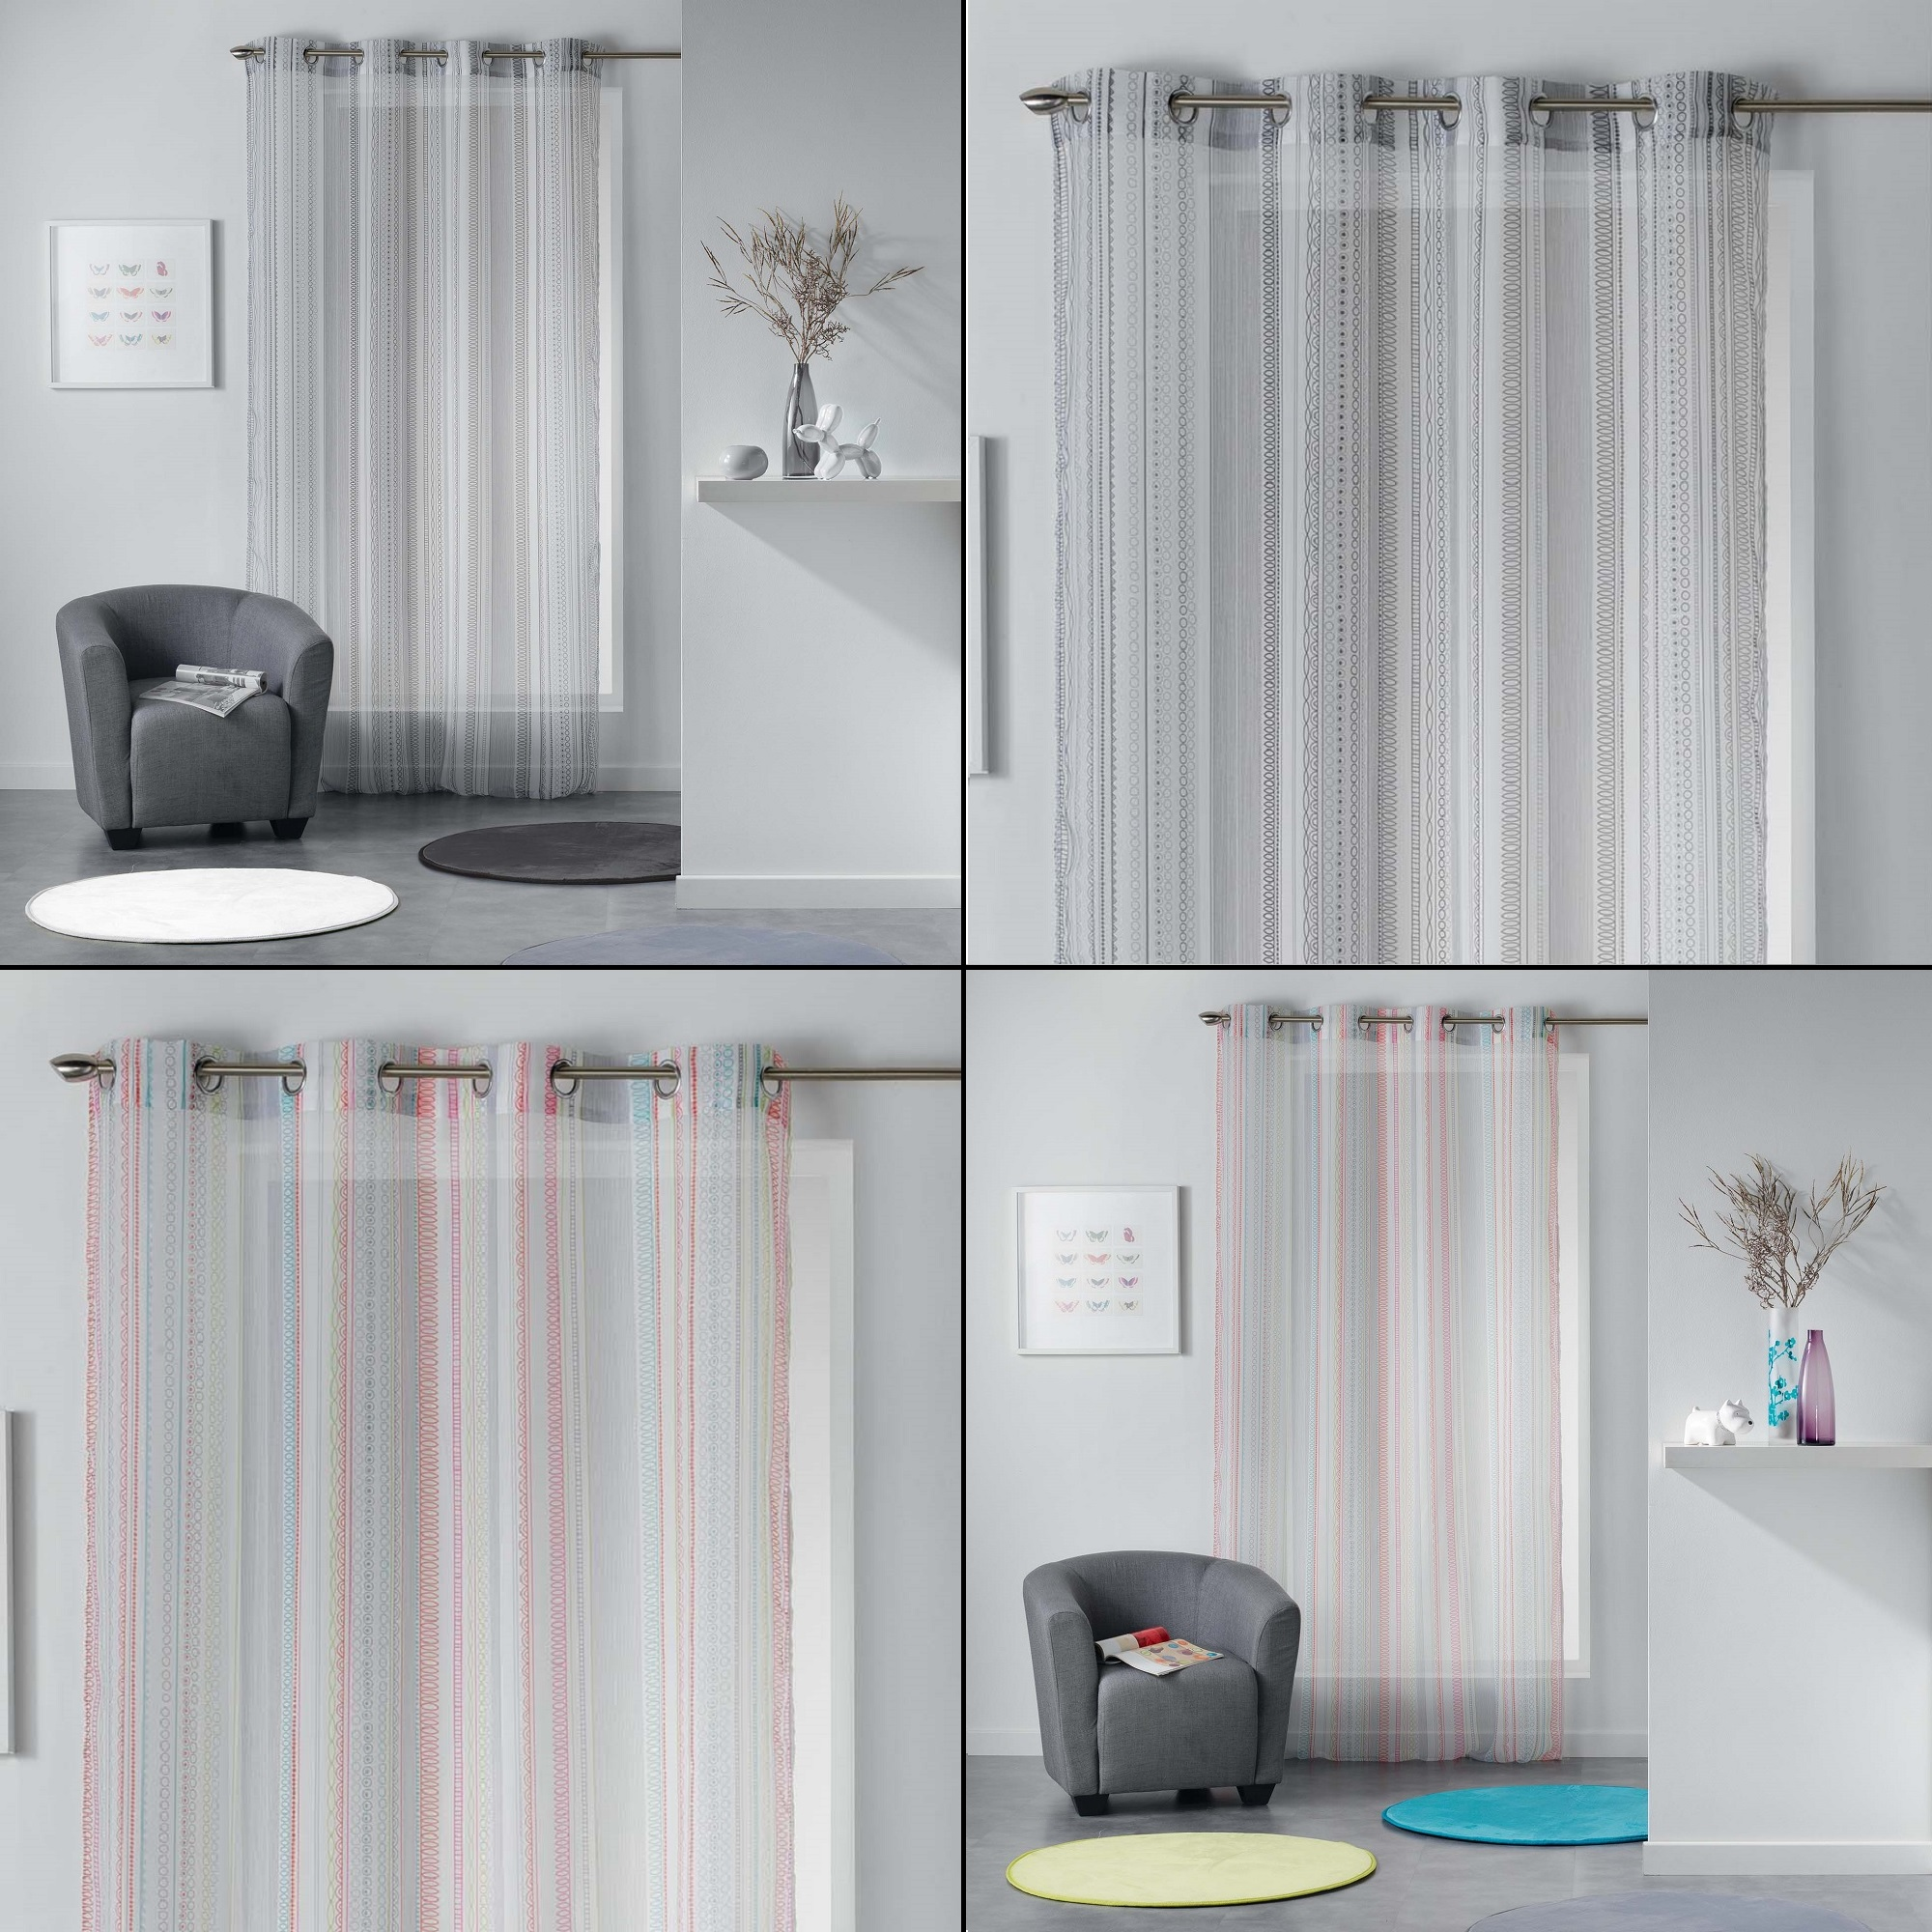 Galoni Eyelet Voile Curtain Panel with Pom Pom Edging Assorted Colours